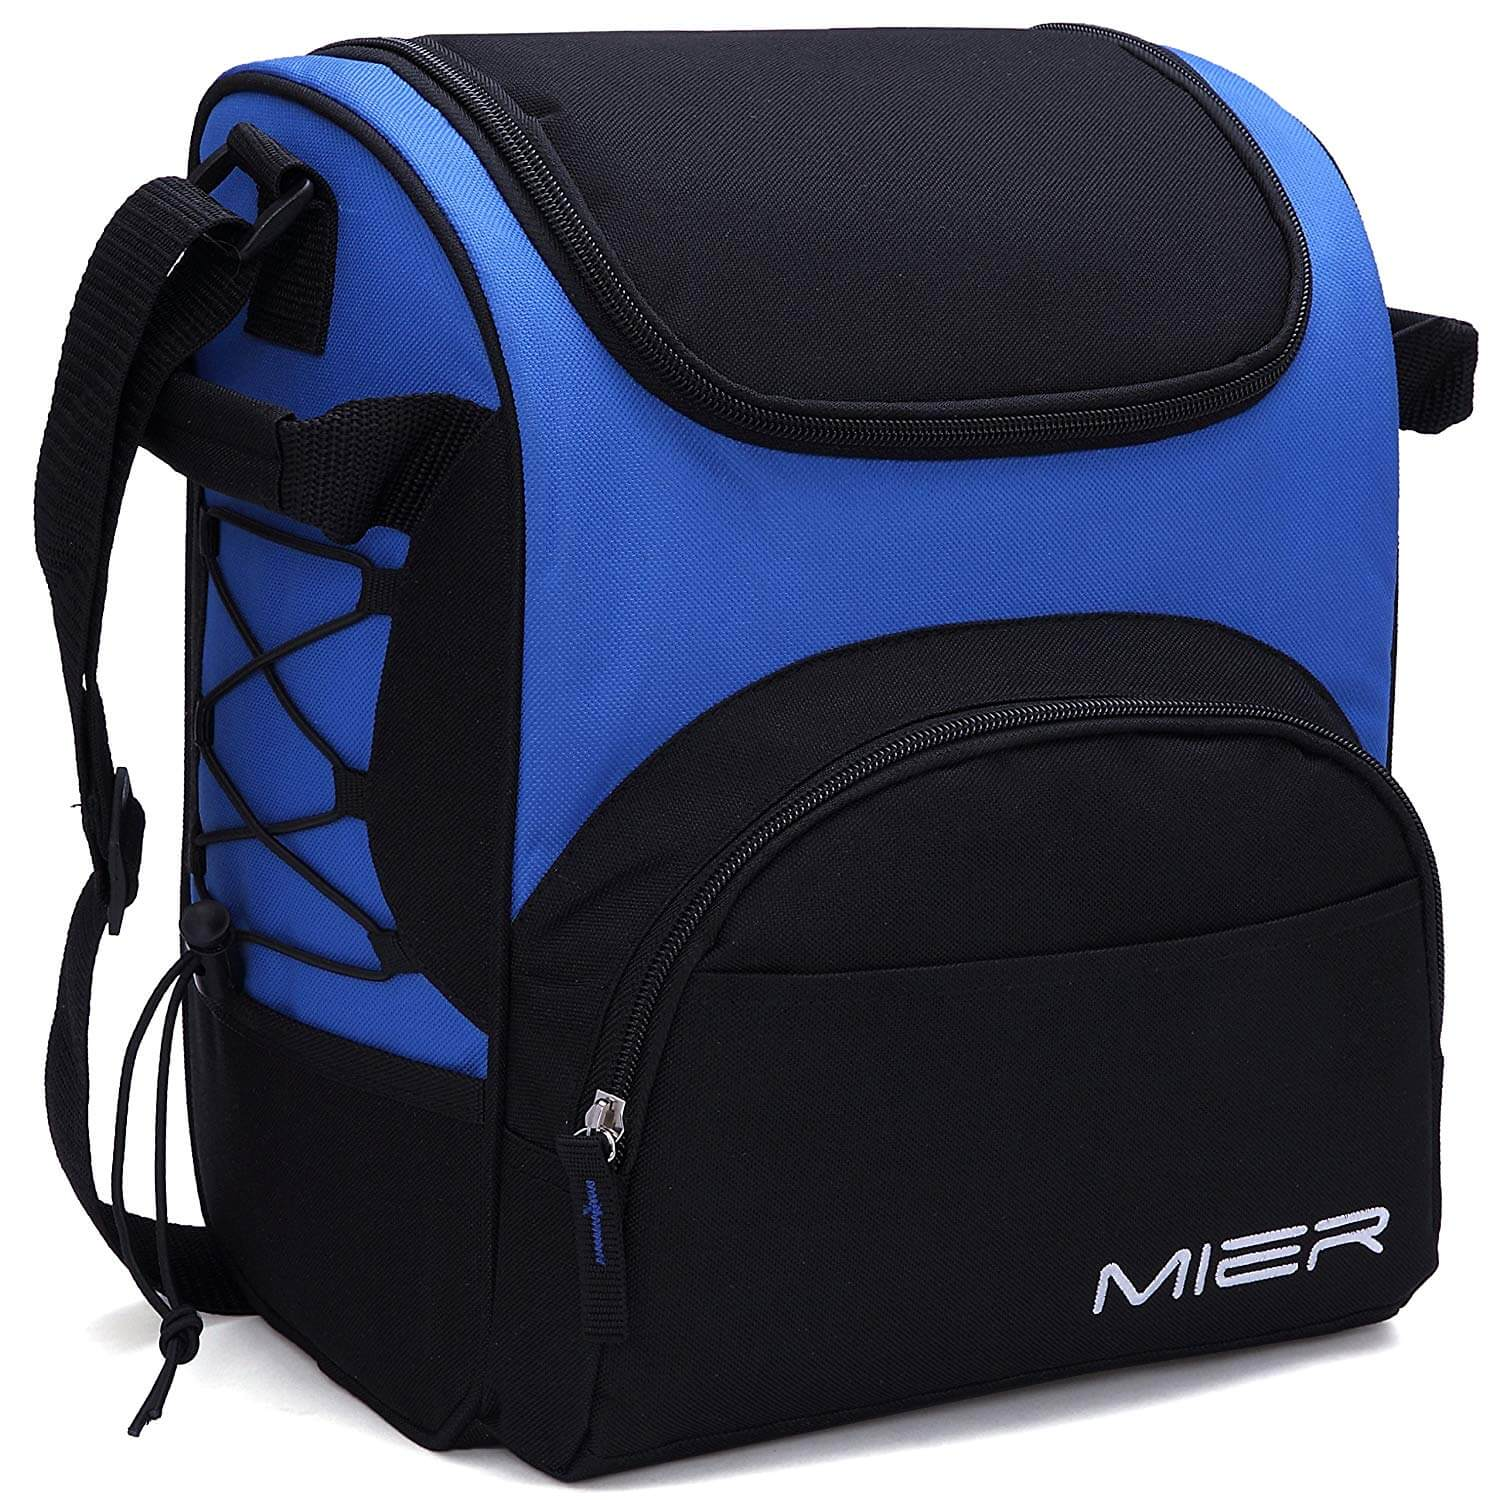 MIER Large Insulated Lunch Bag